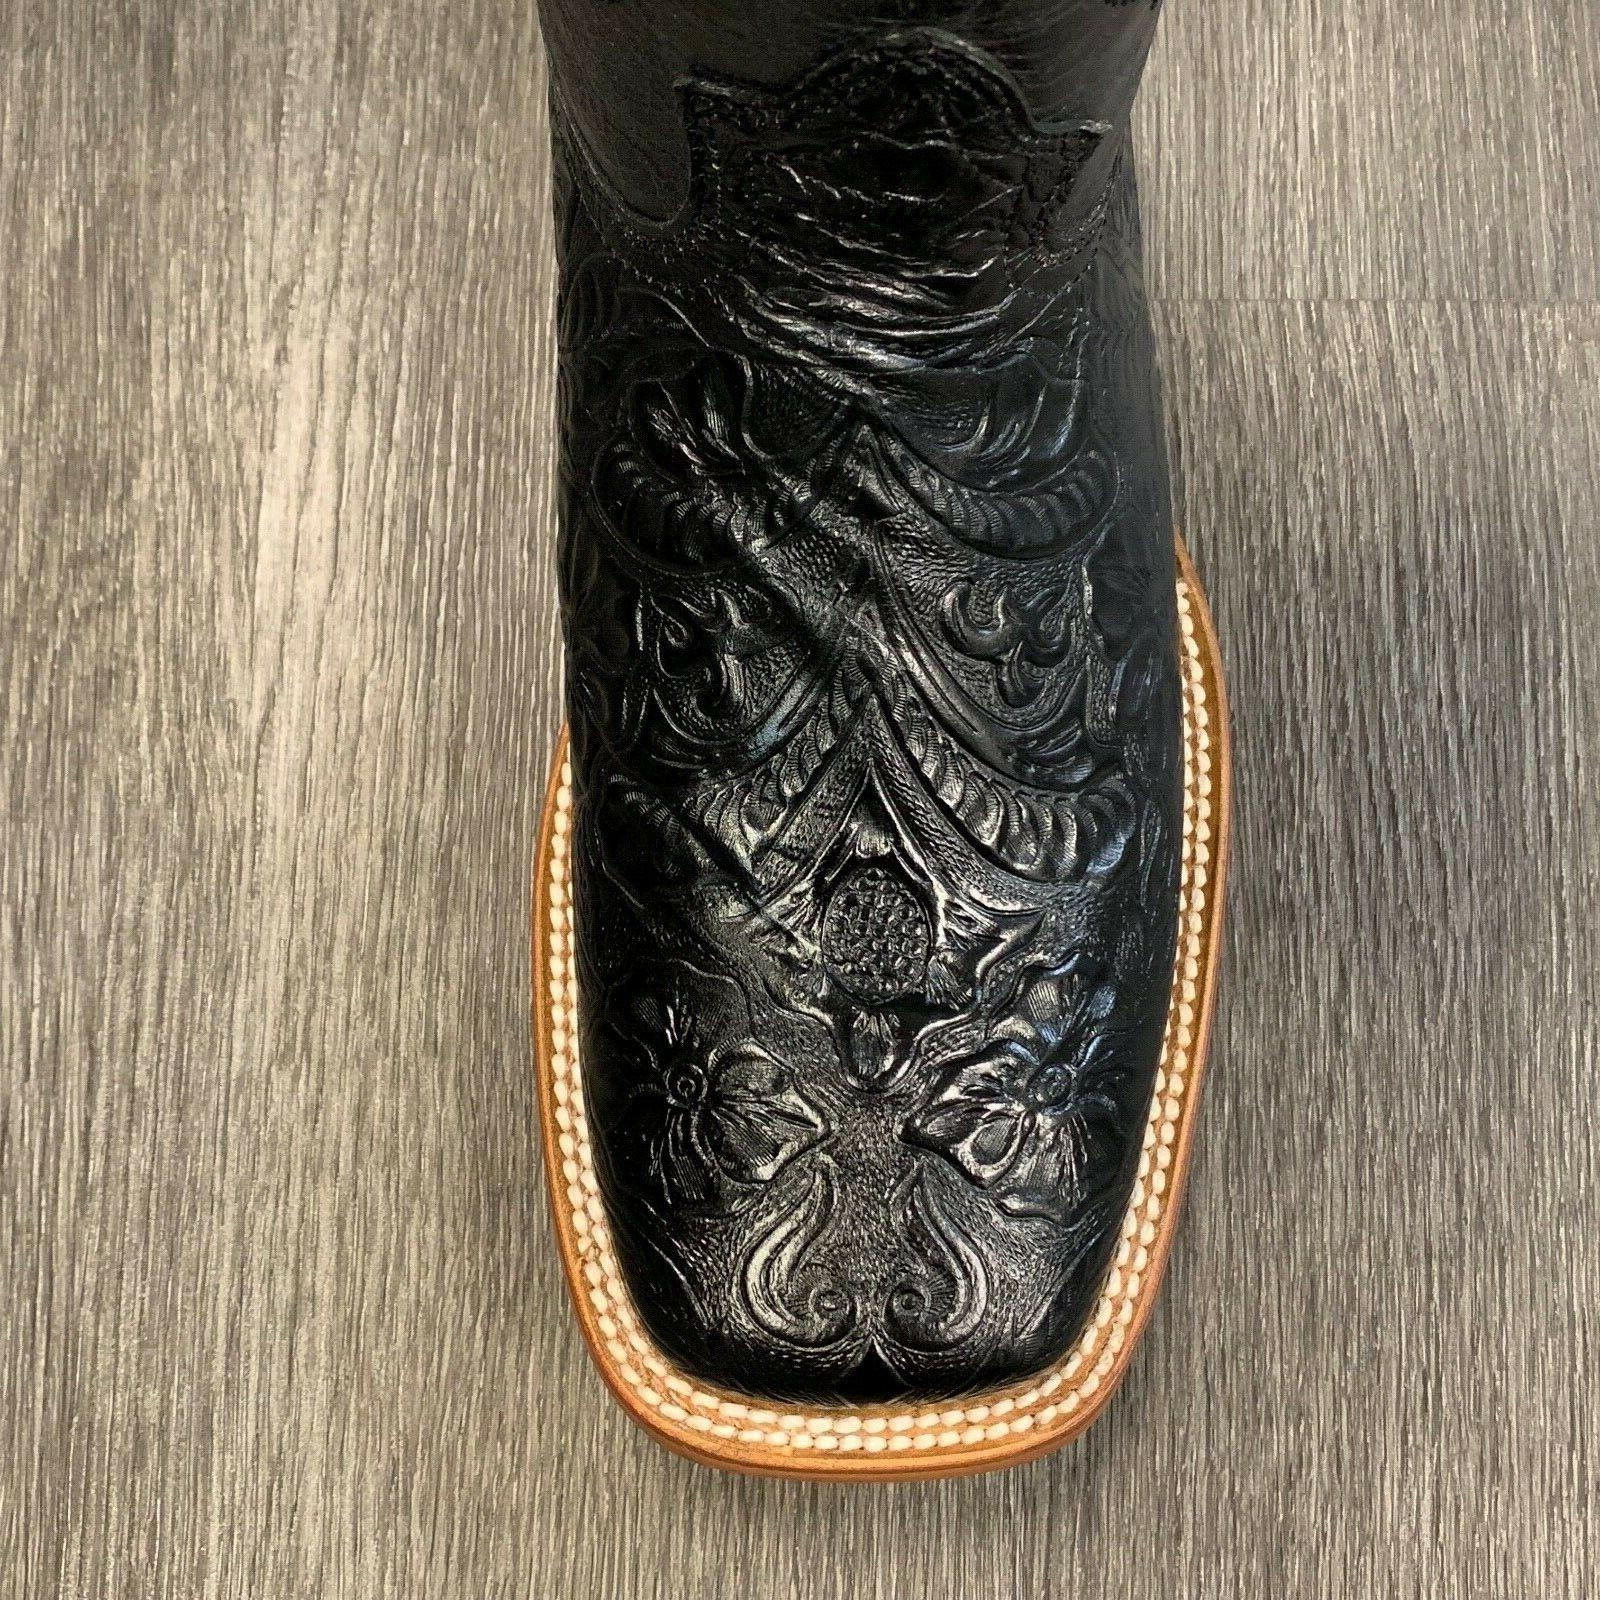 MEN'S RODEO COWBOY REYWELT BRAND TOOLED LEATHER